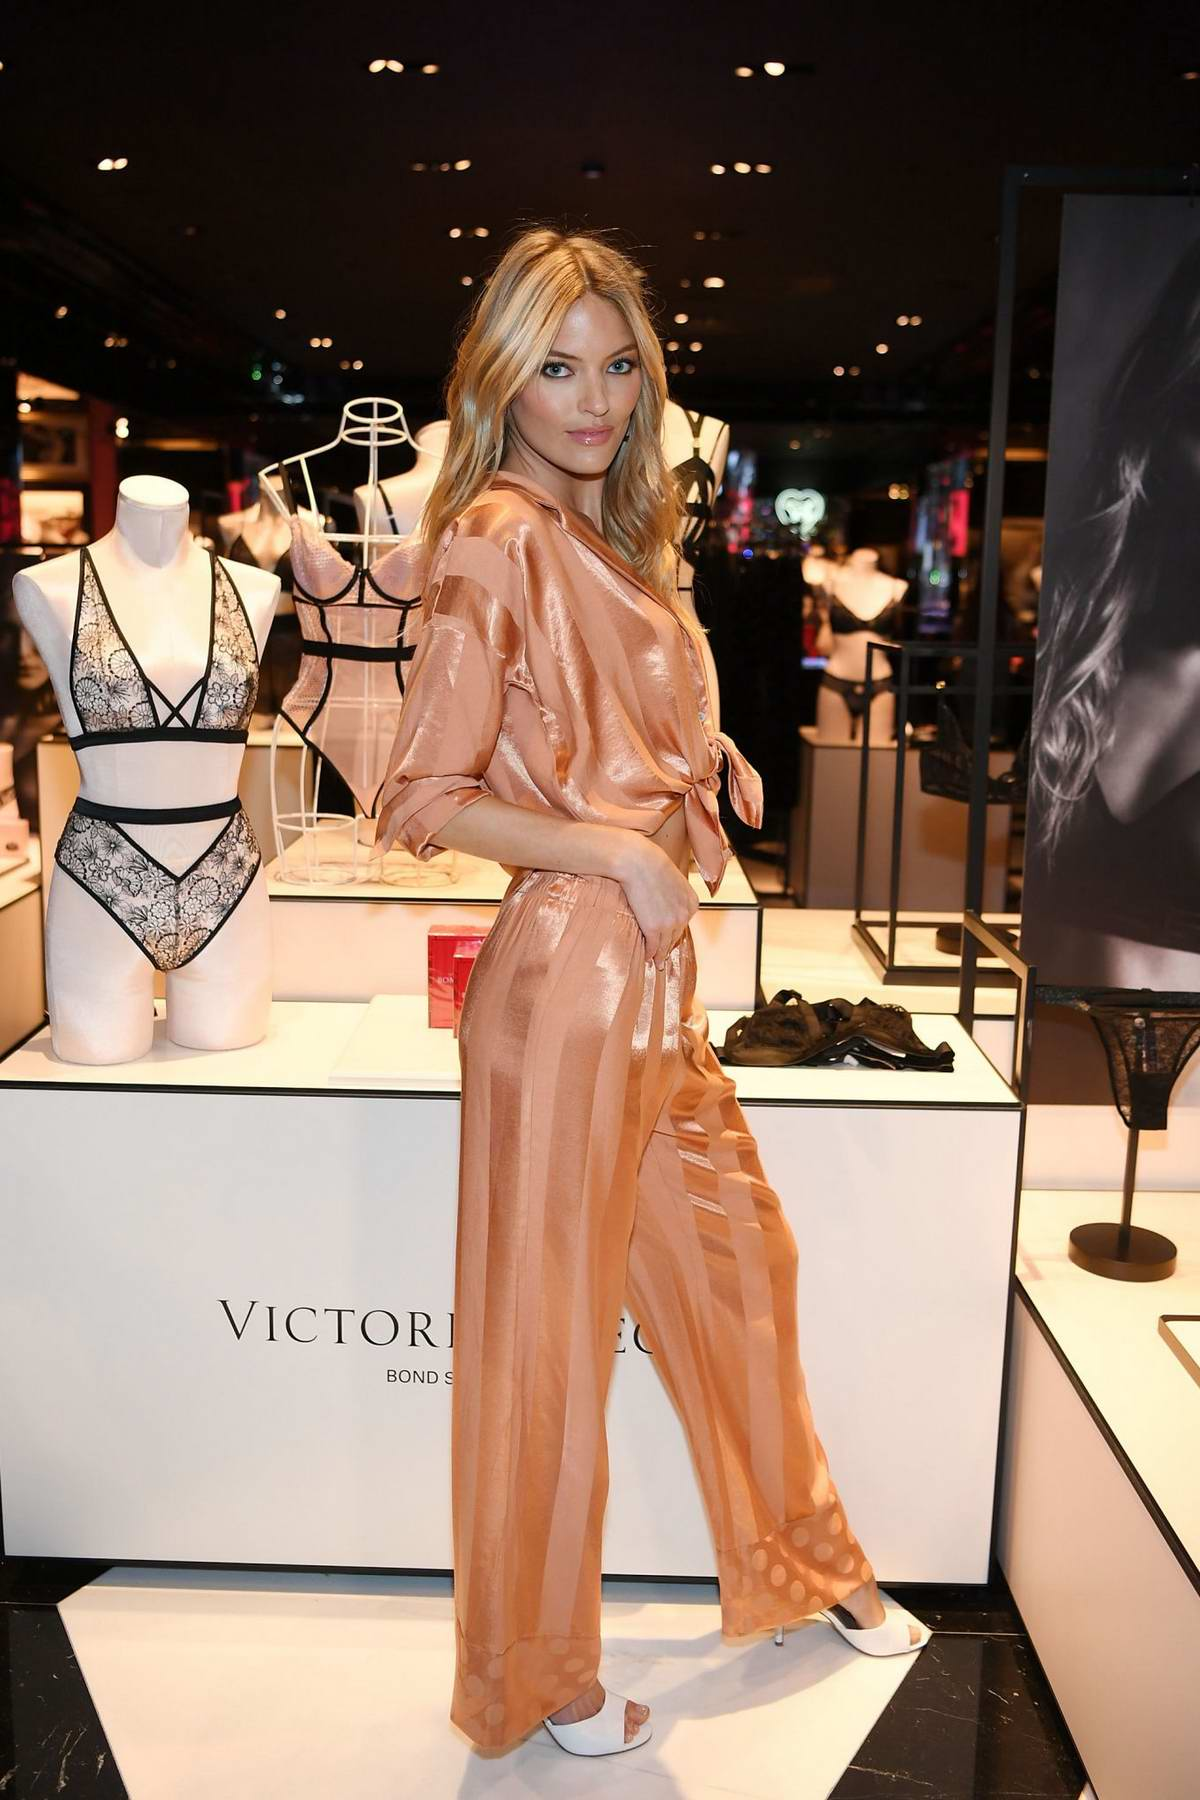 Martha Hunt attends the debut of Victoria's Secret new Fall Collection at The Forum Shoppes in Las Vegas, Nevada